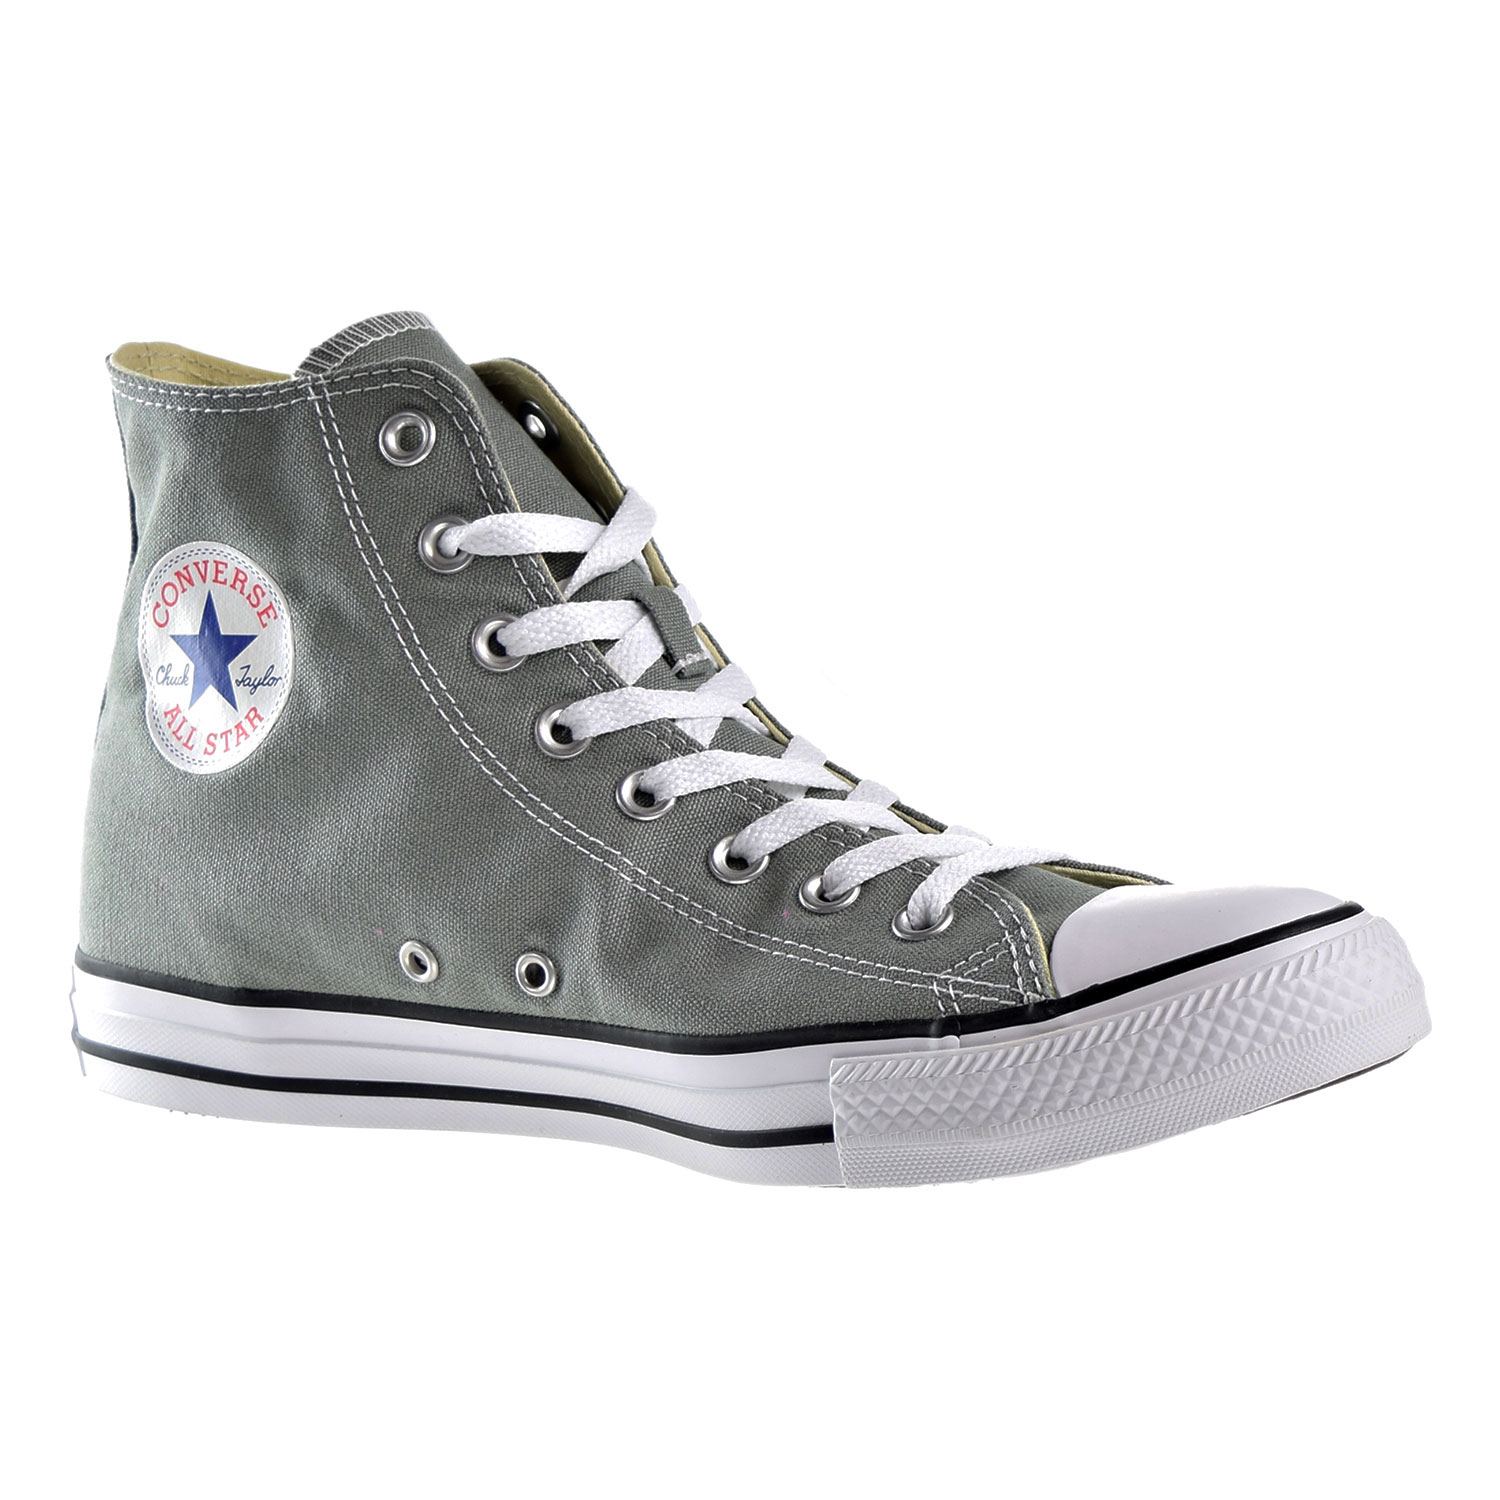 Converse Chuck Taylor All-Star High Unisex Shoes Camo Green155569F